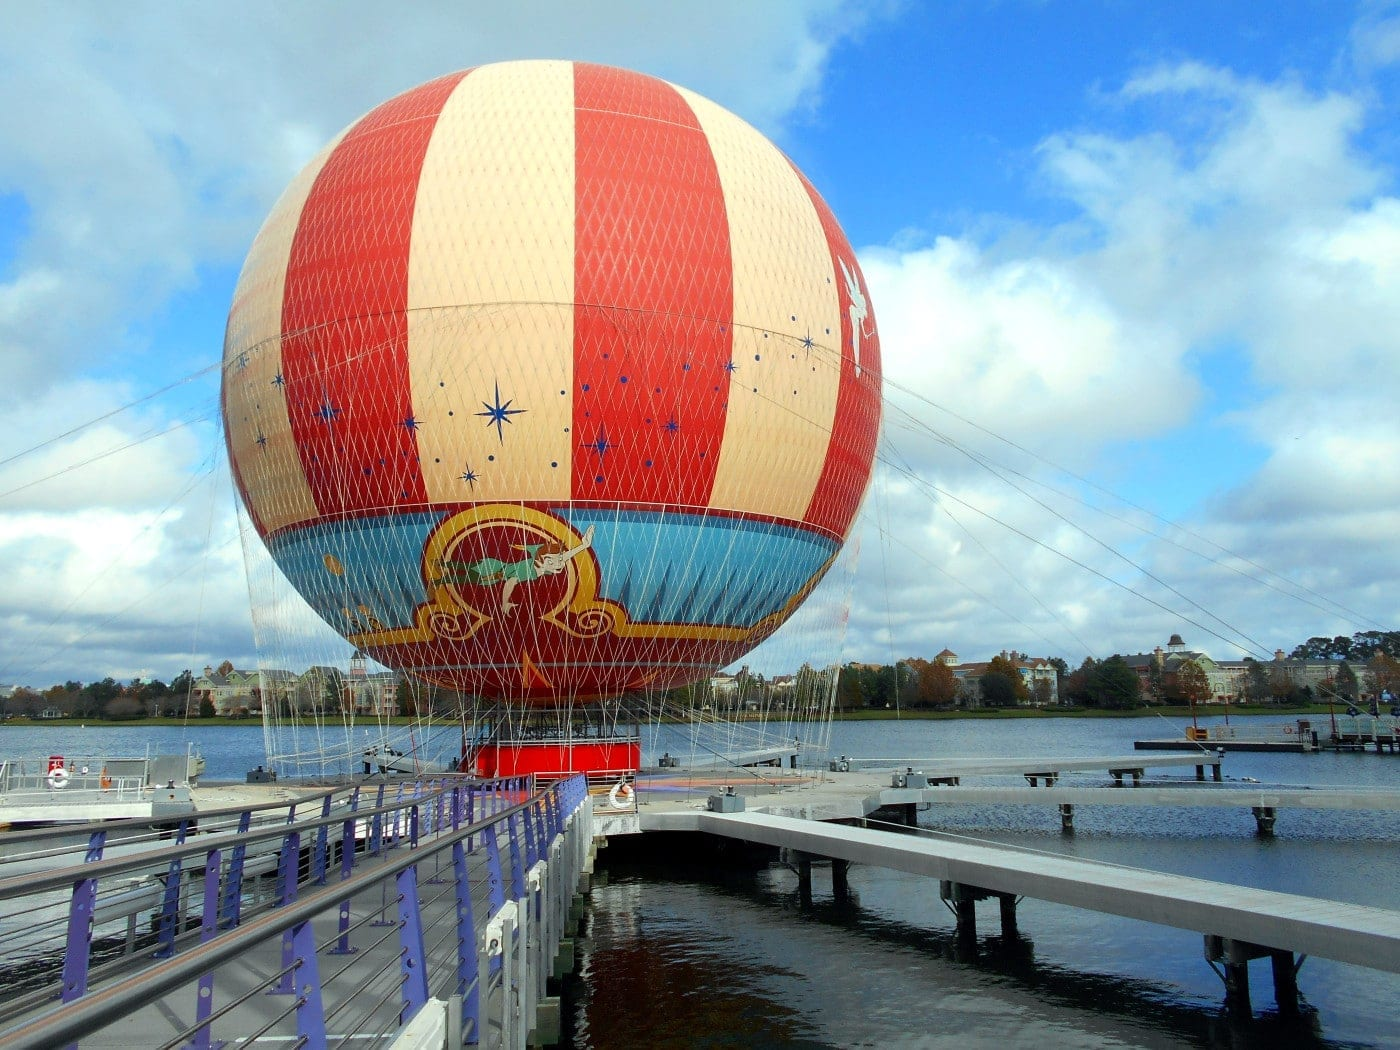 View of the Balloon ride at Downtown Disney (Disney Springs) - Yogurt Dressing